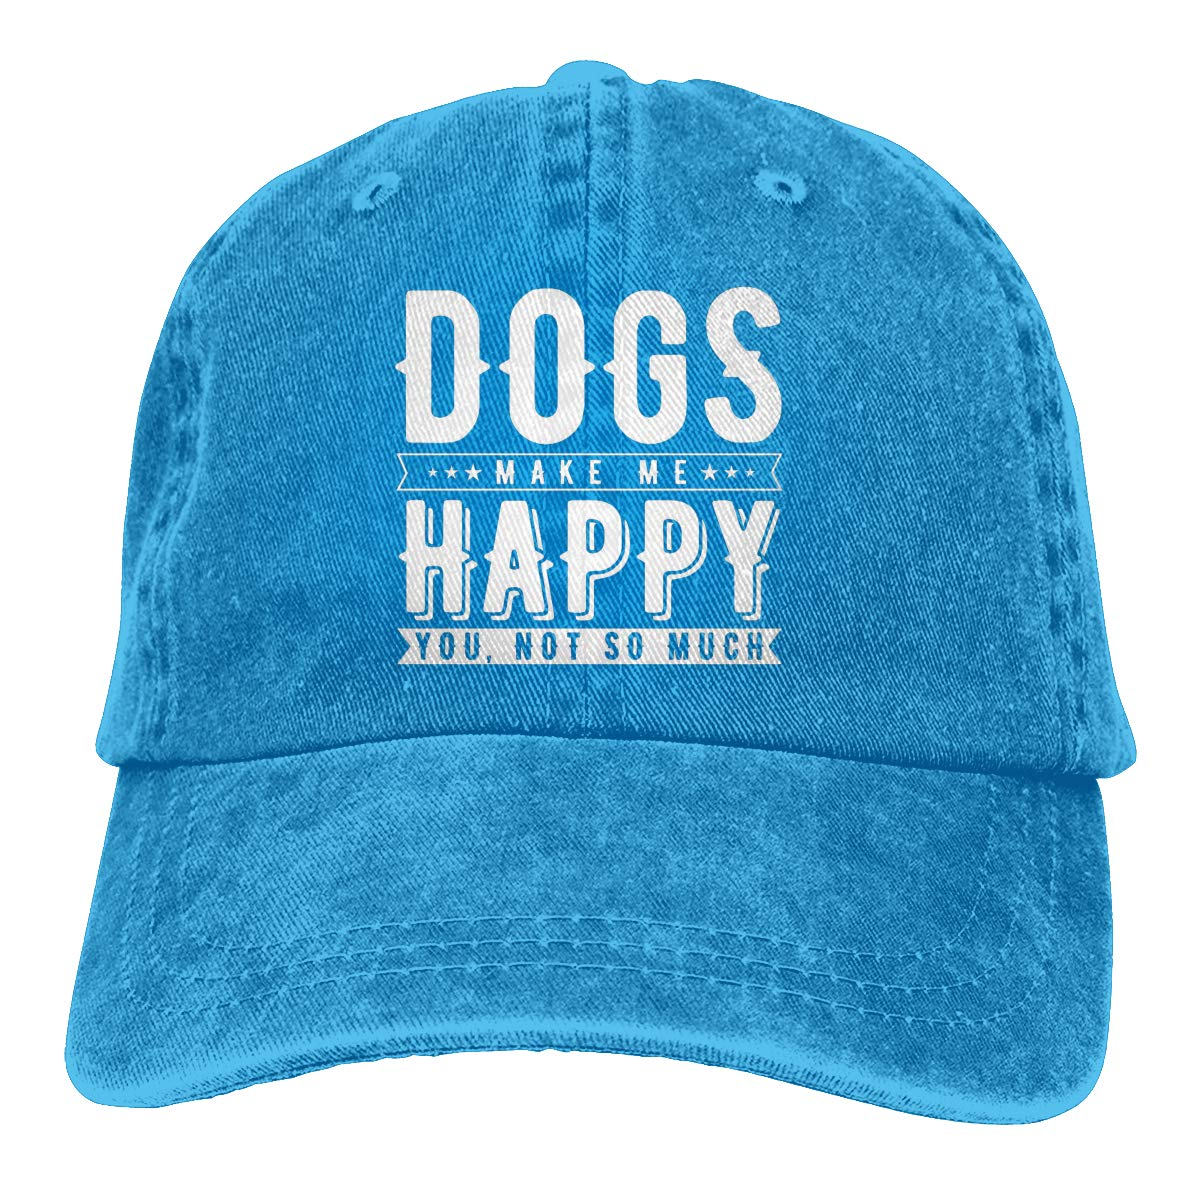 Andeonky Dogs Make Me Happy You Not So Much Hats Denim Fabric Cap Dad Adjustable Hat Baseball Cap Black